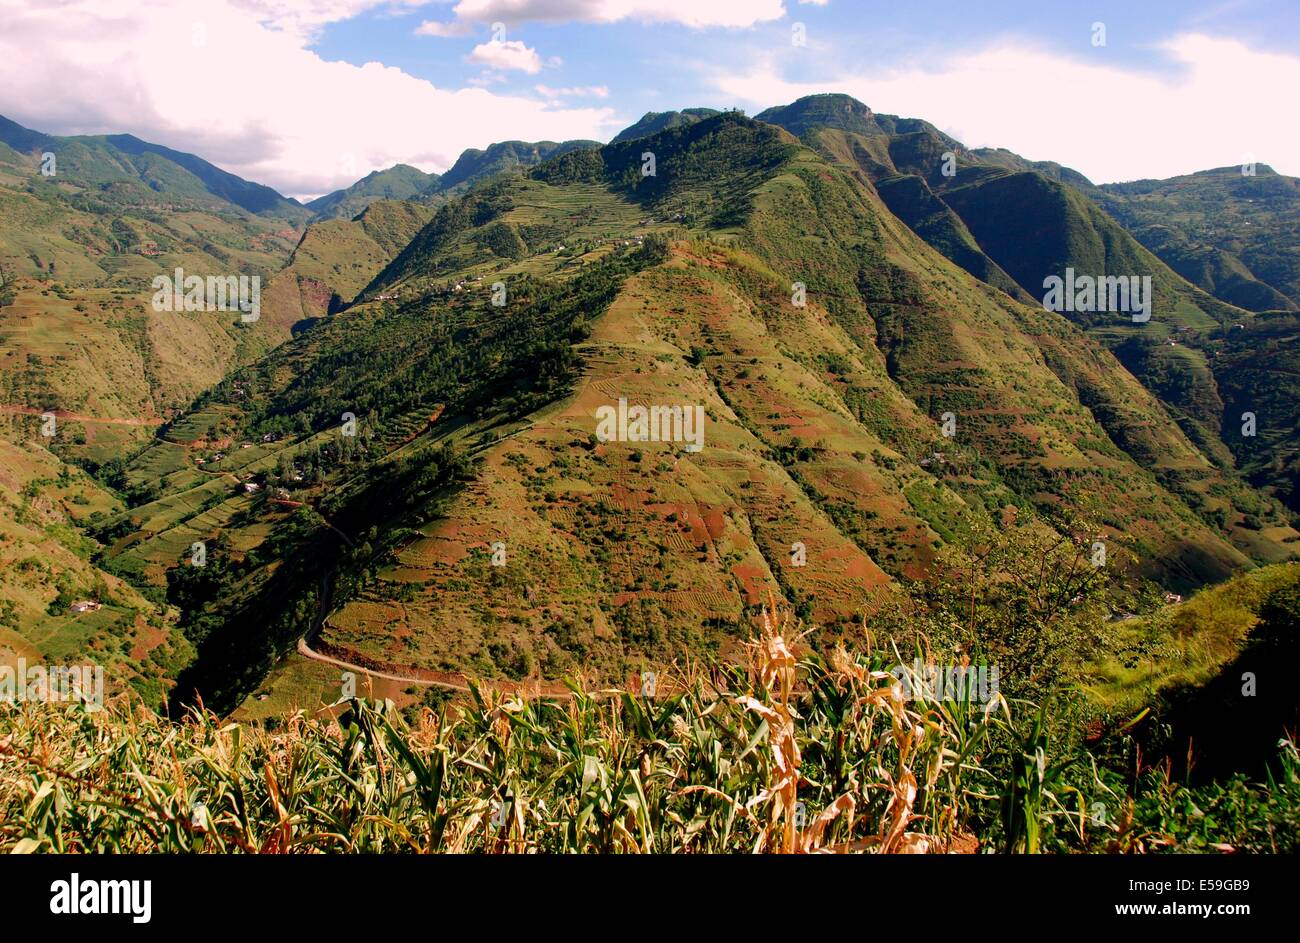 Yunnan Province, China:  Corn stalks and dramatic mountainsides covered with shrub brush and terraced cornfields - Stock Image